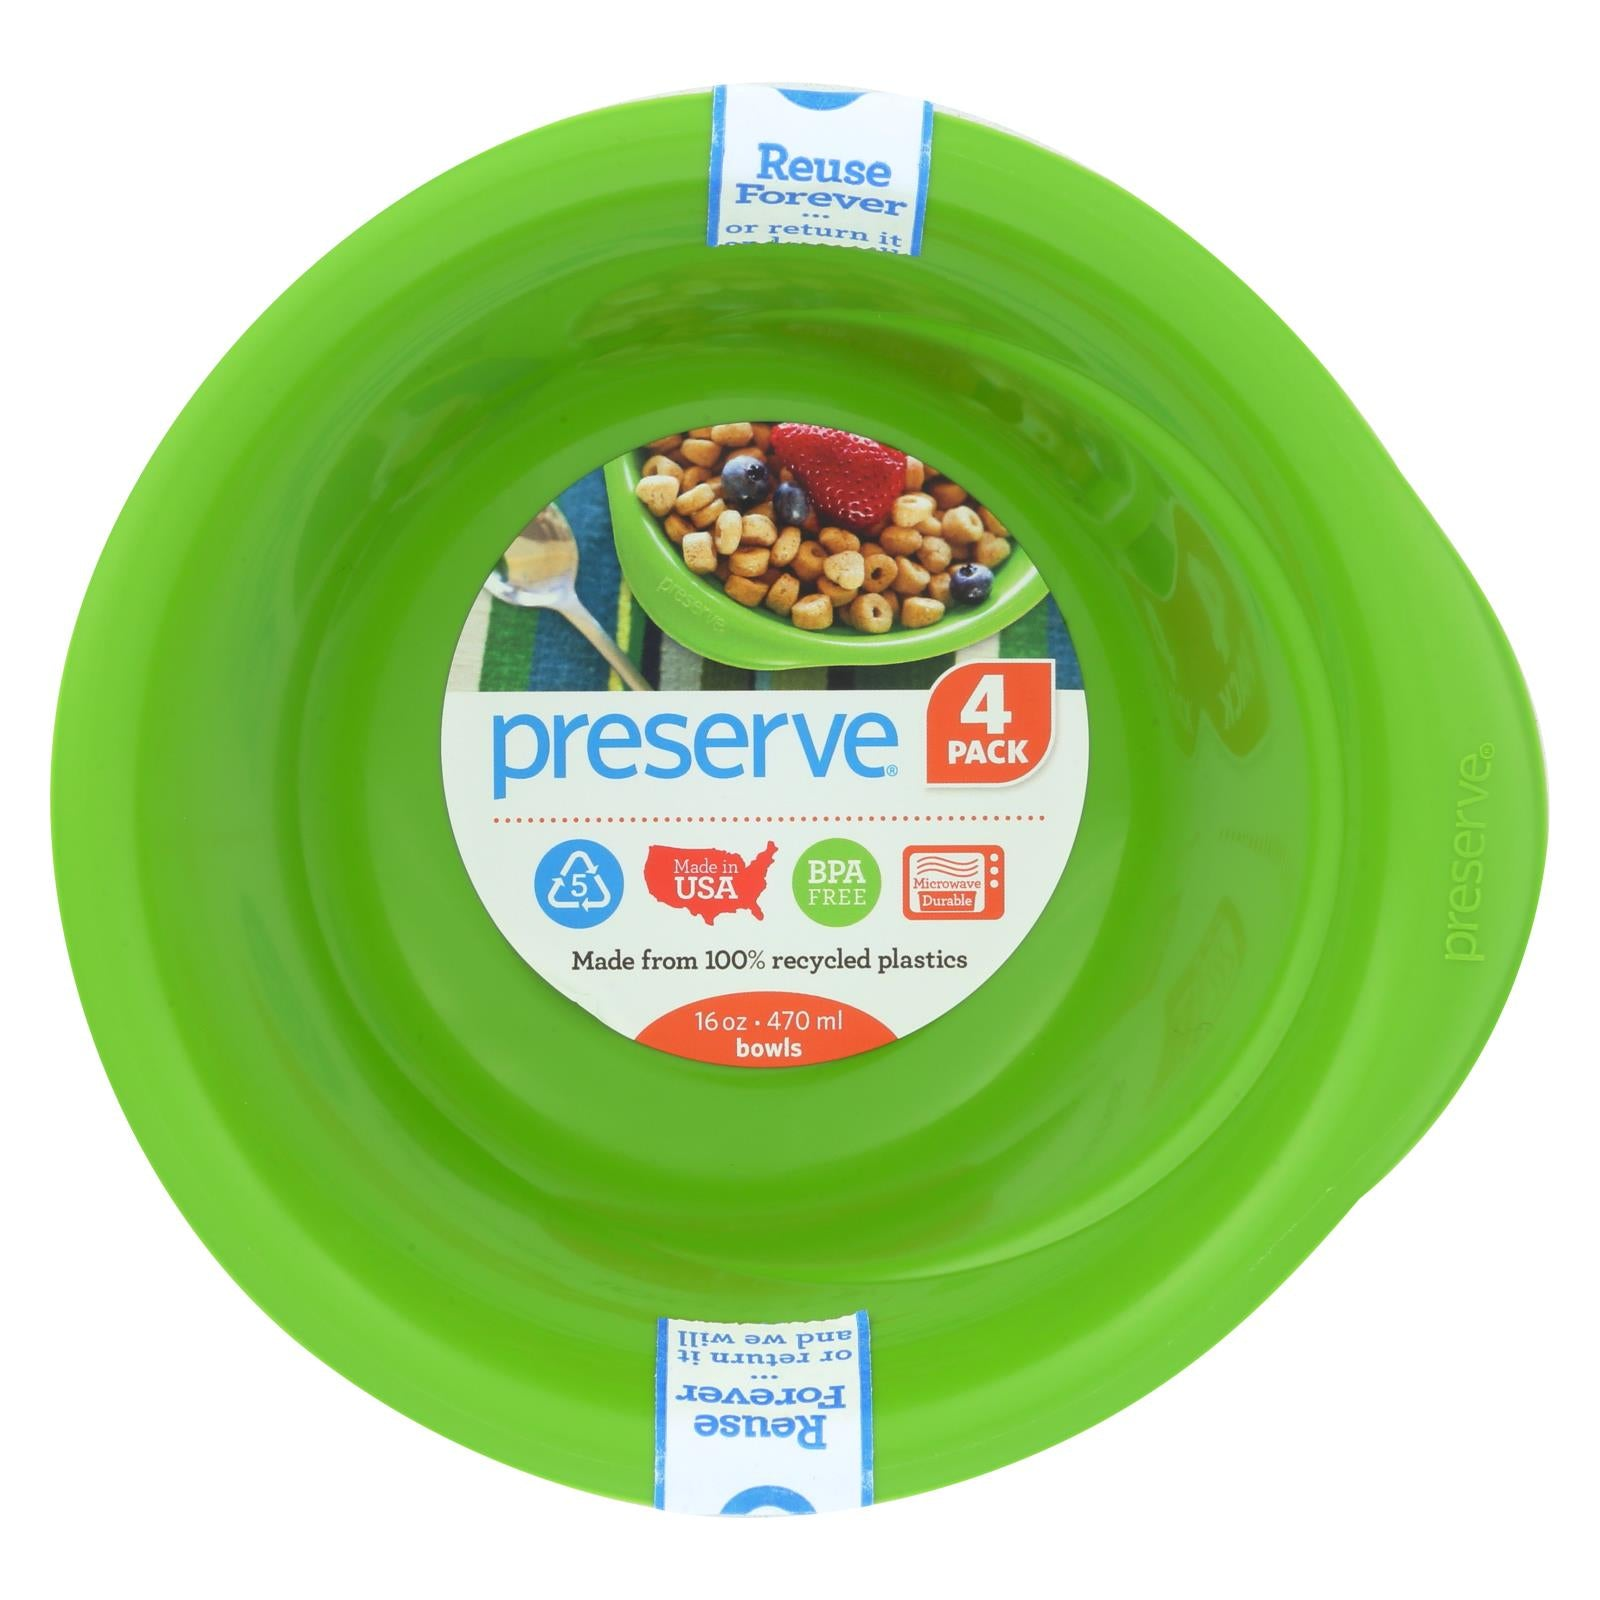 Buy Preserve Everyday Bowls - Apple Green - 4 Pack - 16 oz - Tableware from Veroeco.com